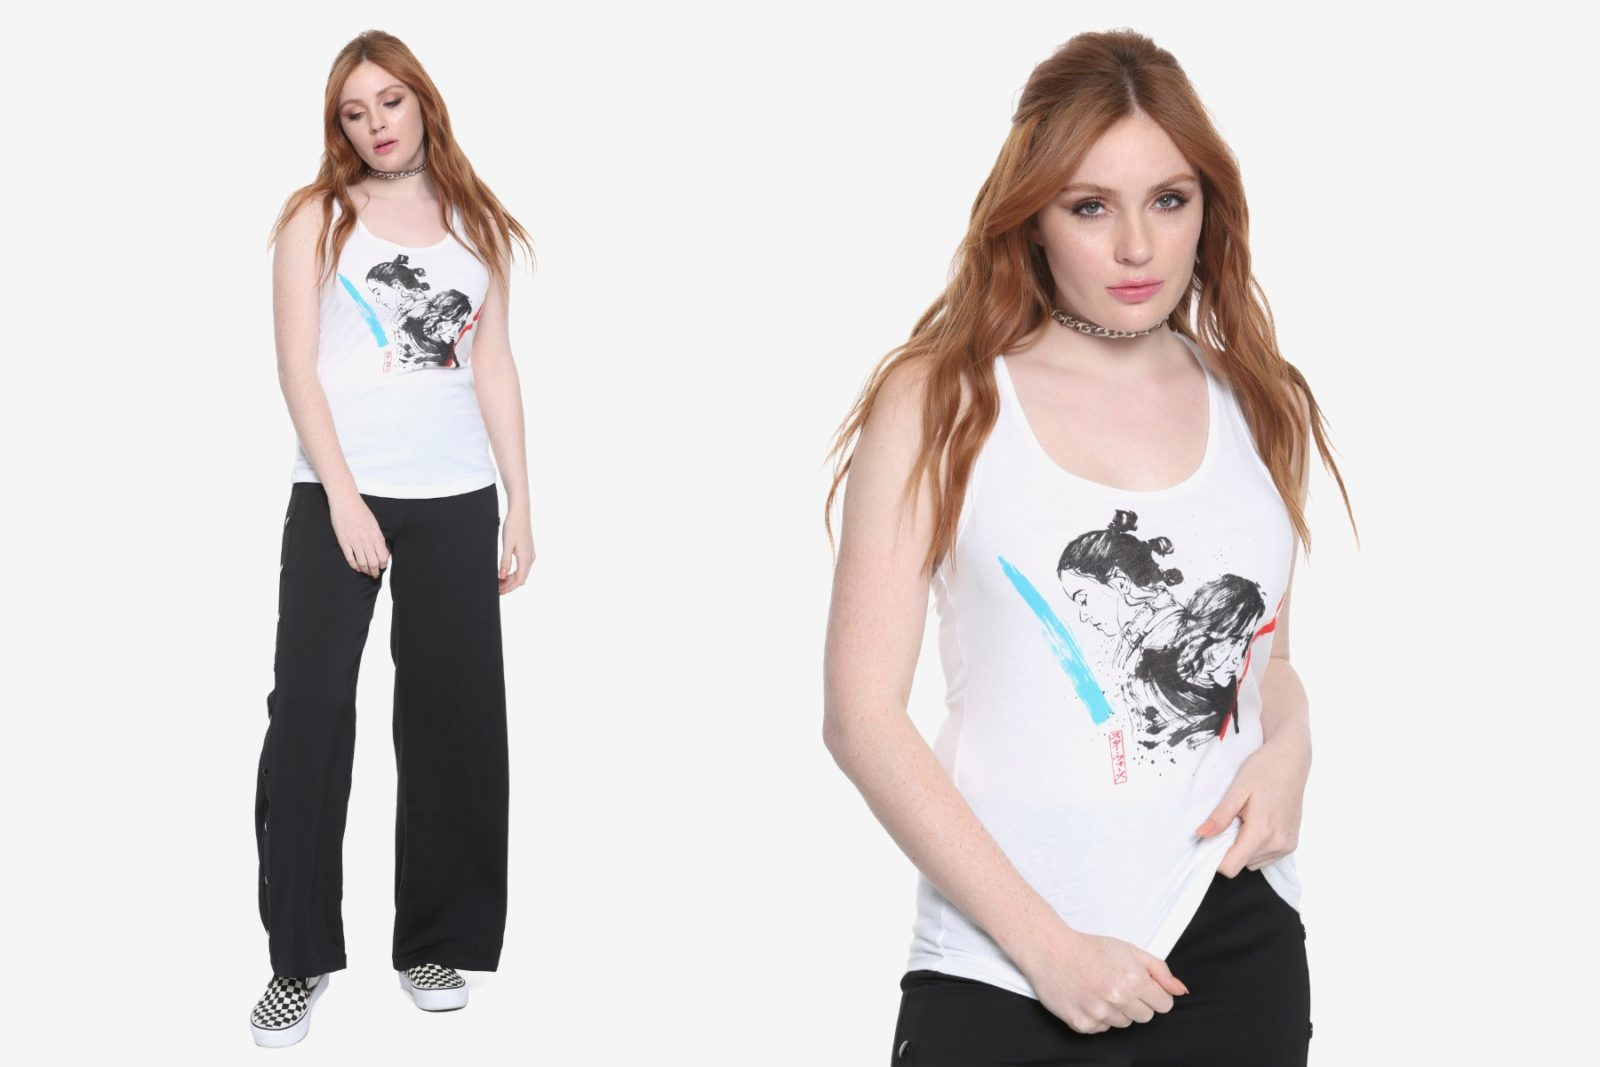 Women's TLJ Kylo Ren & Rey Sketch Tank Top